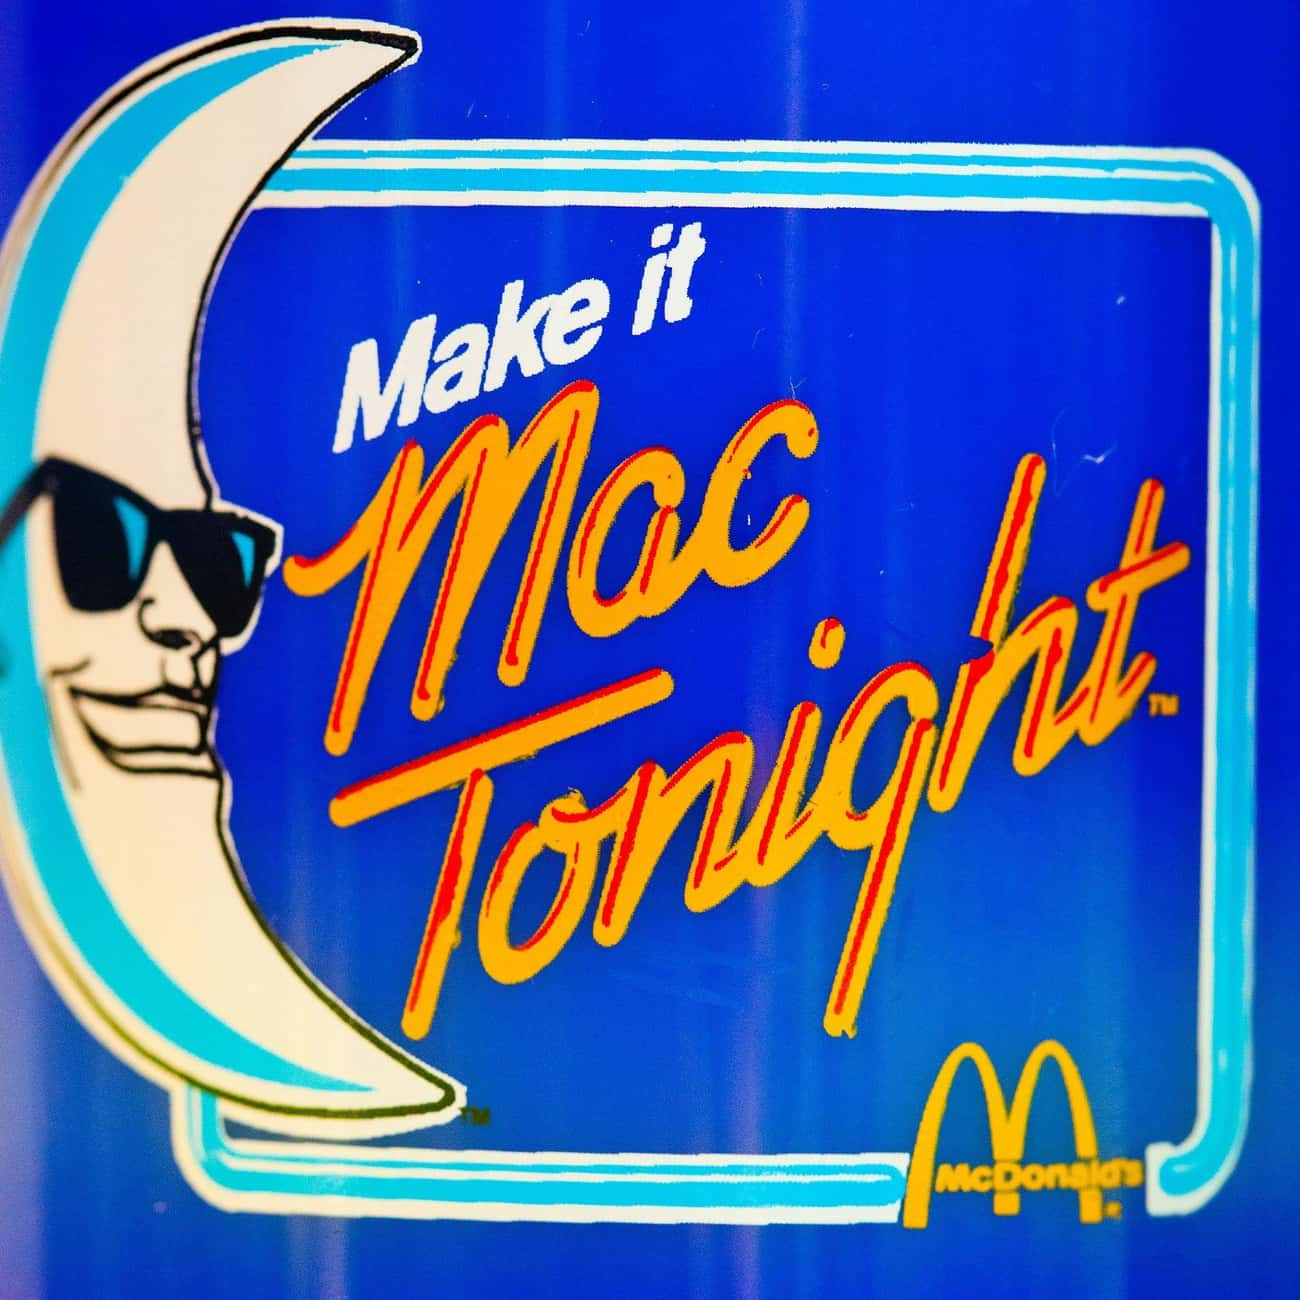 McDonald's Ads Were Extrem is listed (or ranked) 3 on the list Who Was Mac Tonight, The Piano-Playing Moon Man Who Got McDonald's Sued?